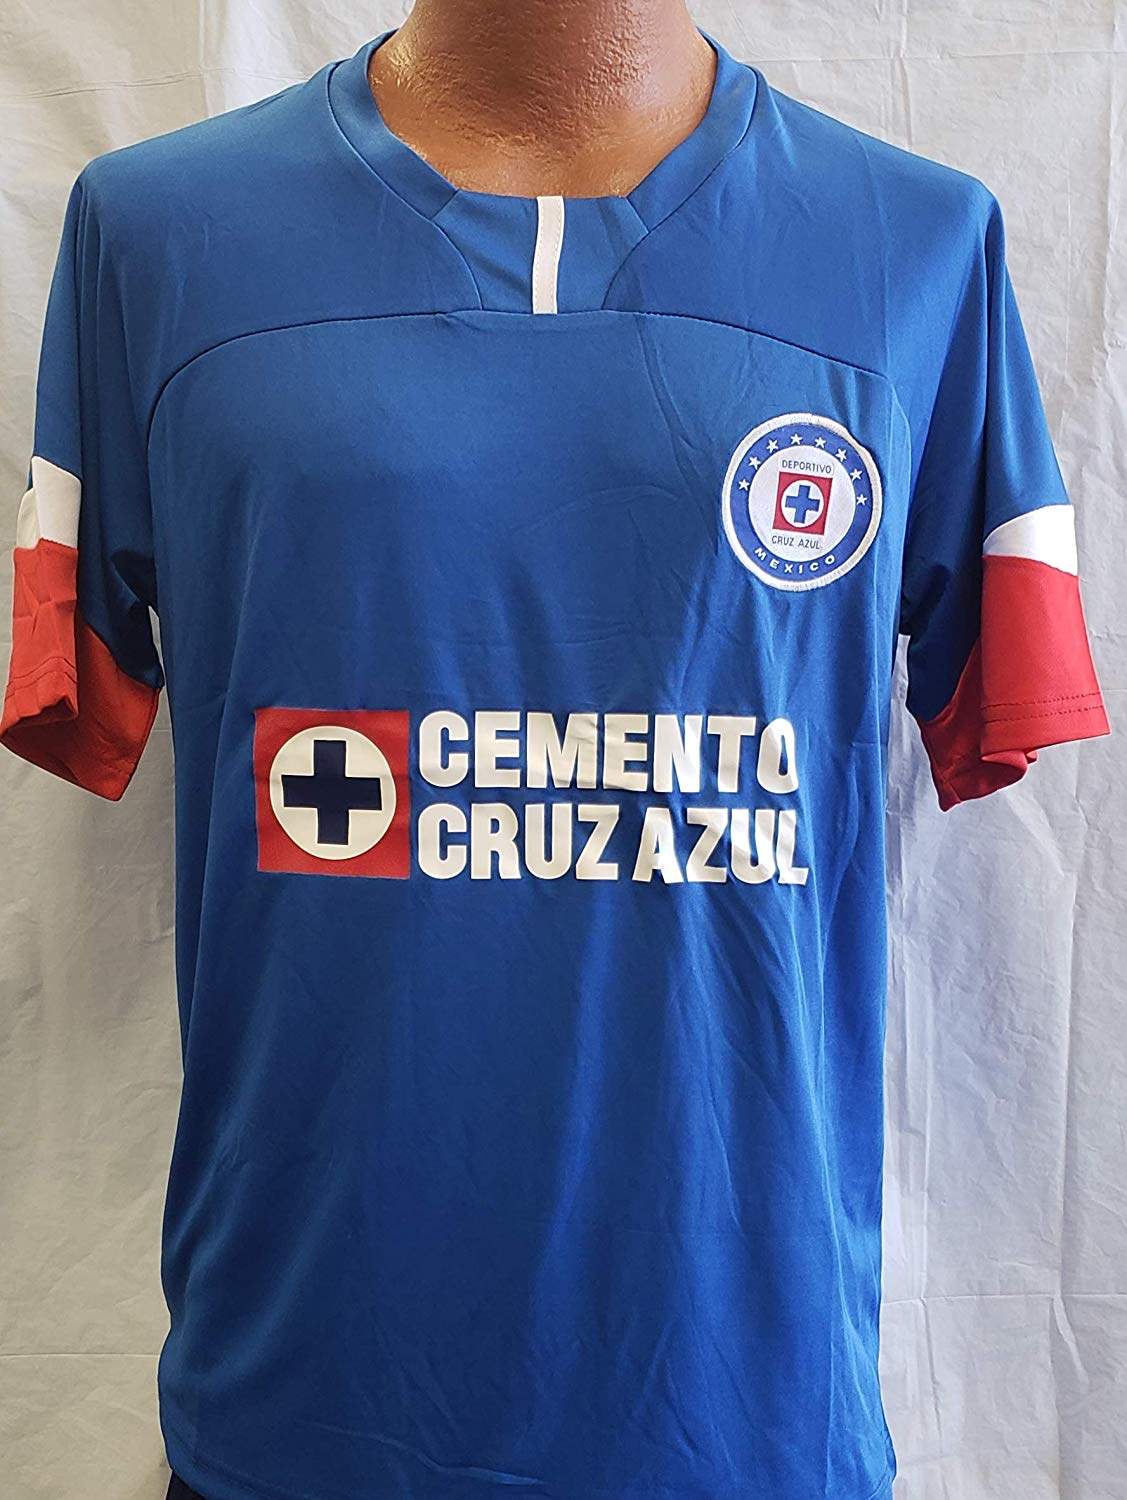 0f8886d0c0d Cheap Cruz Azul Goalkeeper Jersey, find Cruz Azul Goalkeeper Jersey ...